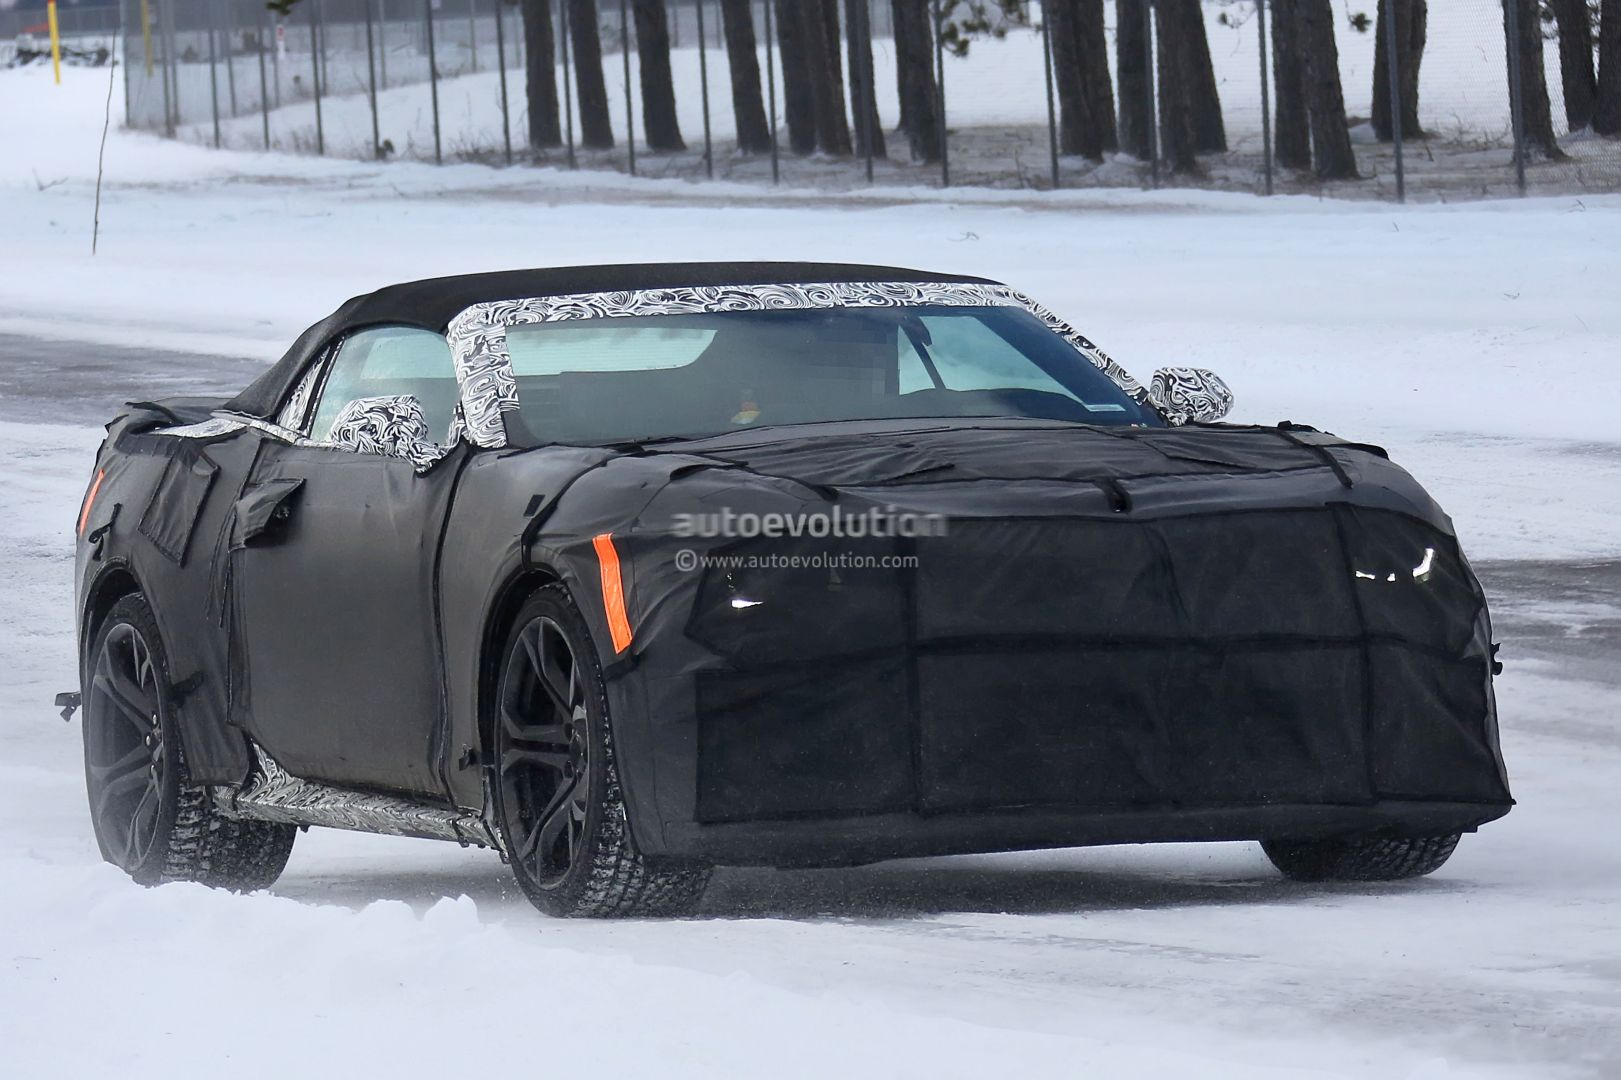 2018 Chevrolet Camaro Convertible photo - 5